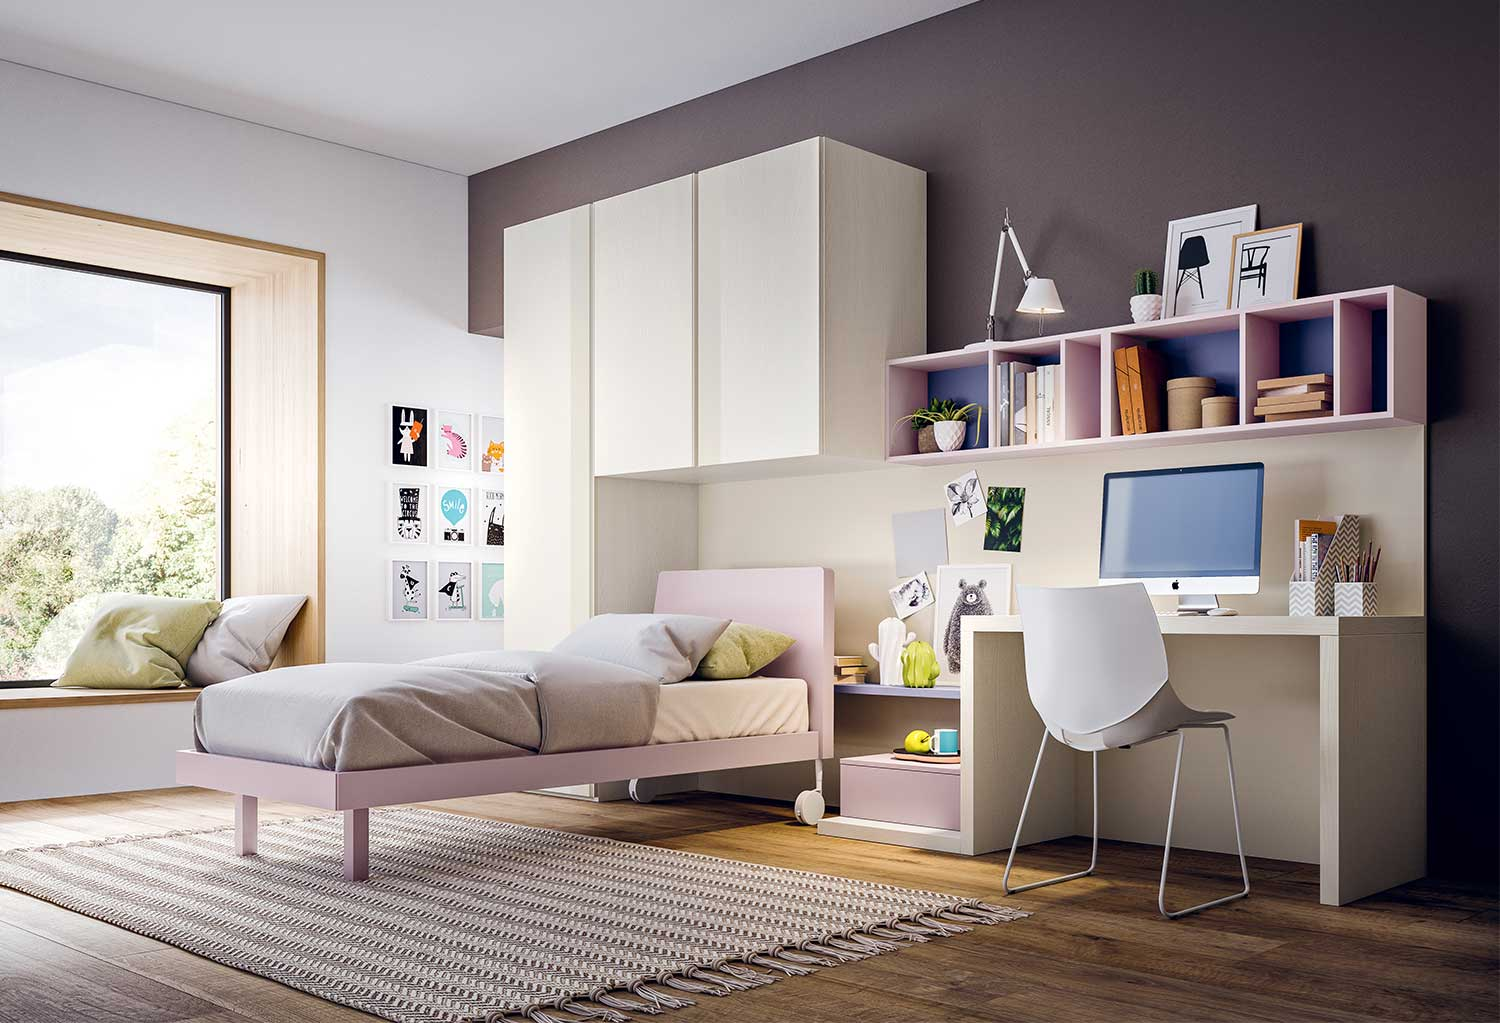 The girls bedroom set includes wardrobe, bed, desk and shelving